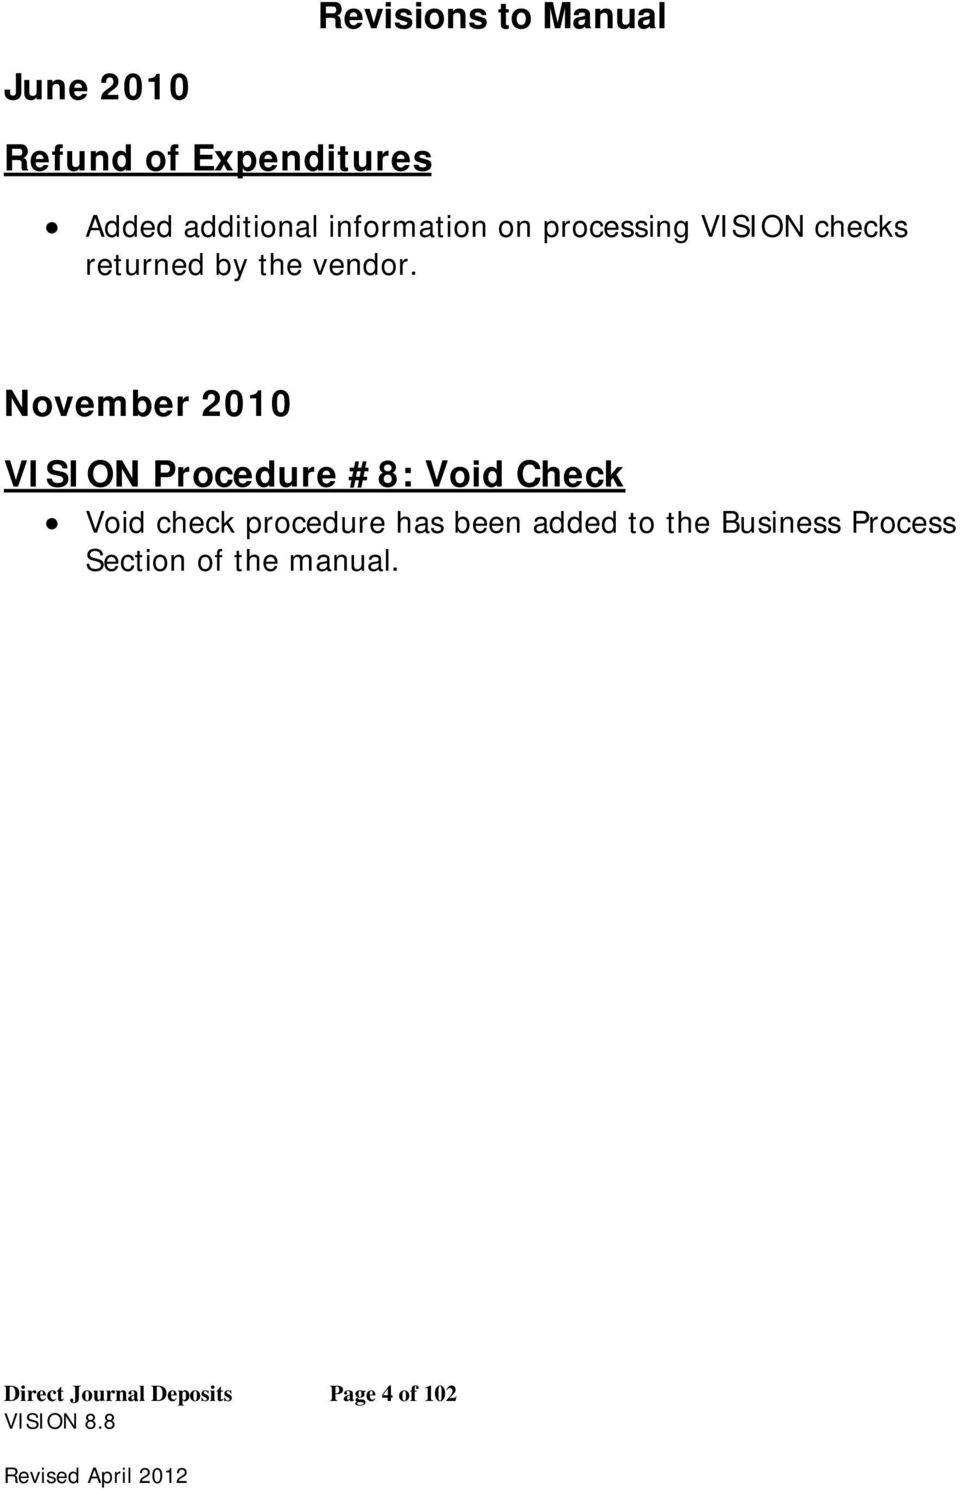 November 2010 VISION Procedure #8: Void Check Void check procedure has